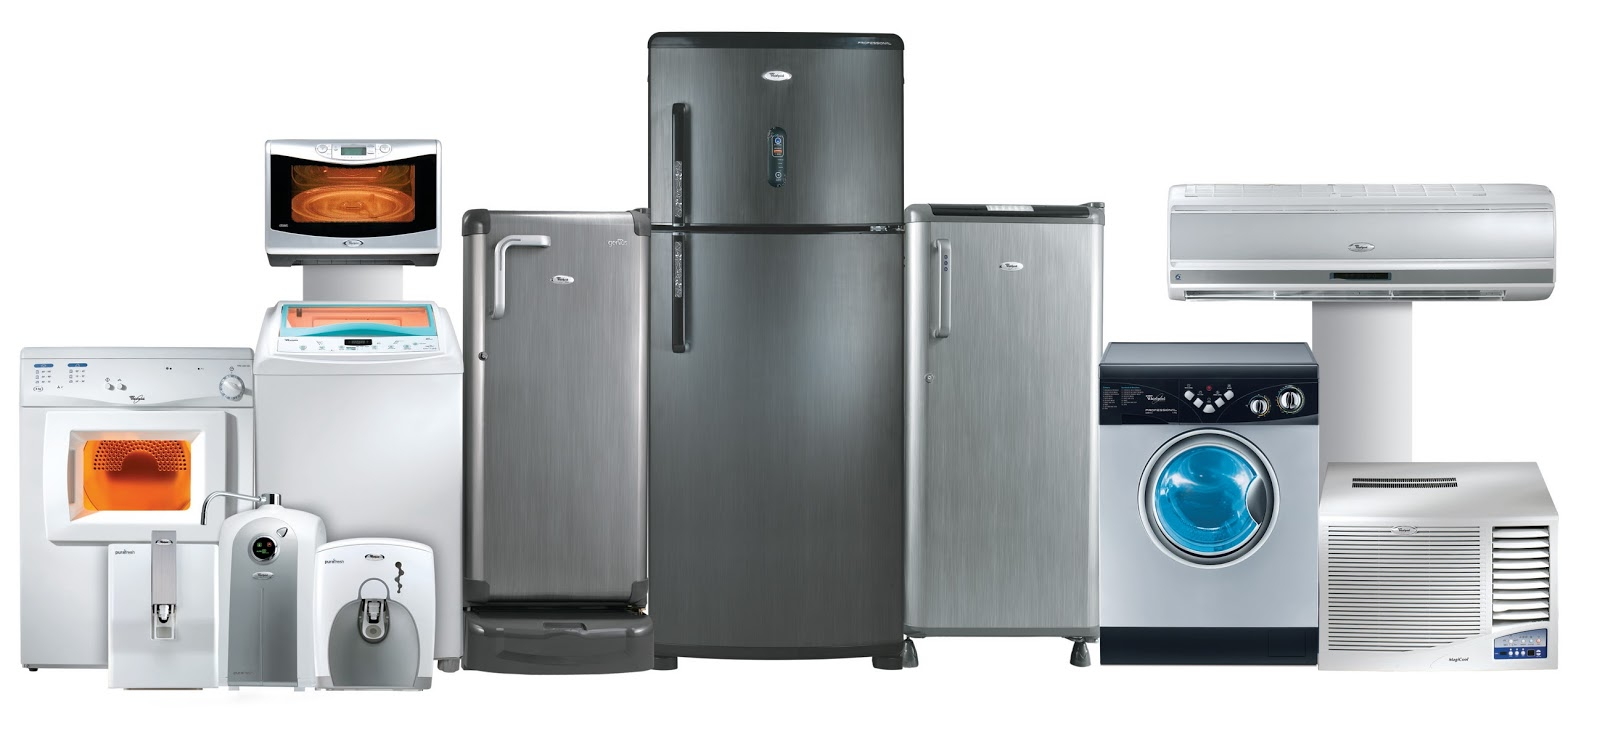 Whirlpool Spare Parts Whirlpool Spare Parts In Chennai